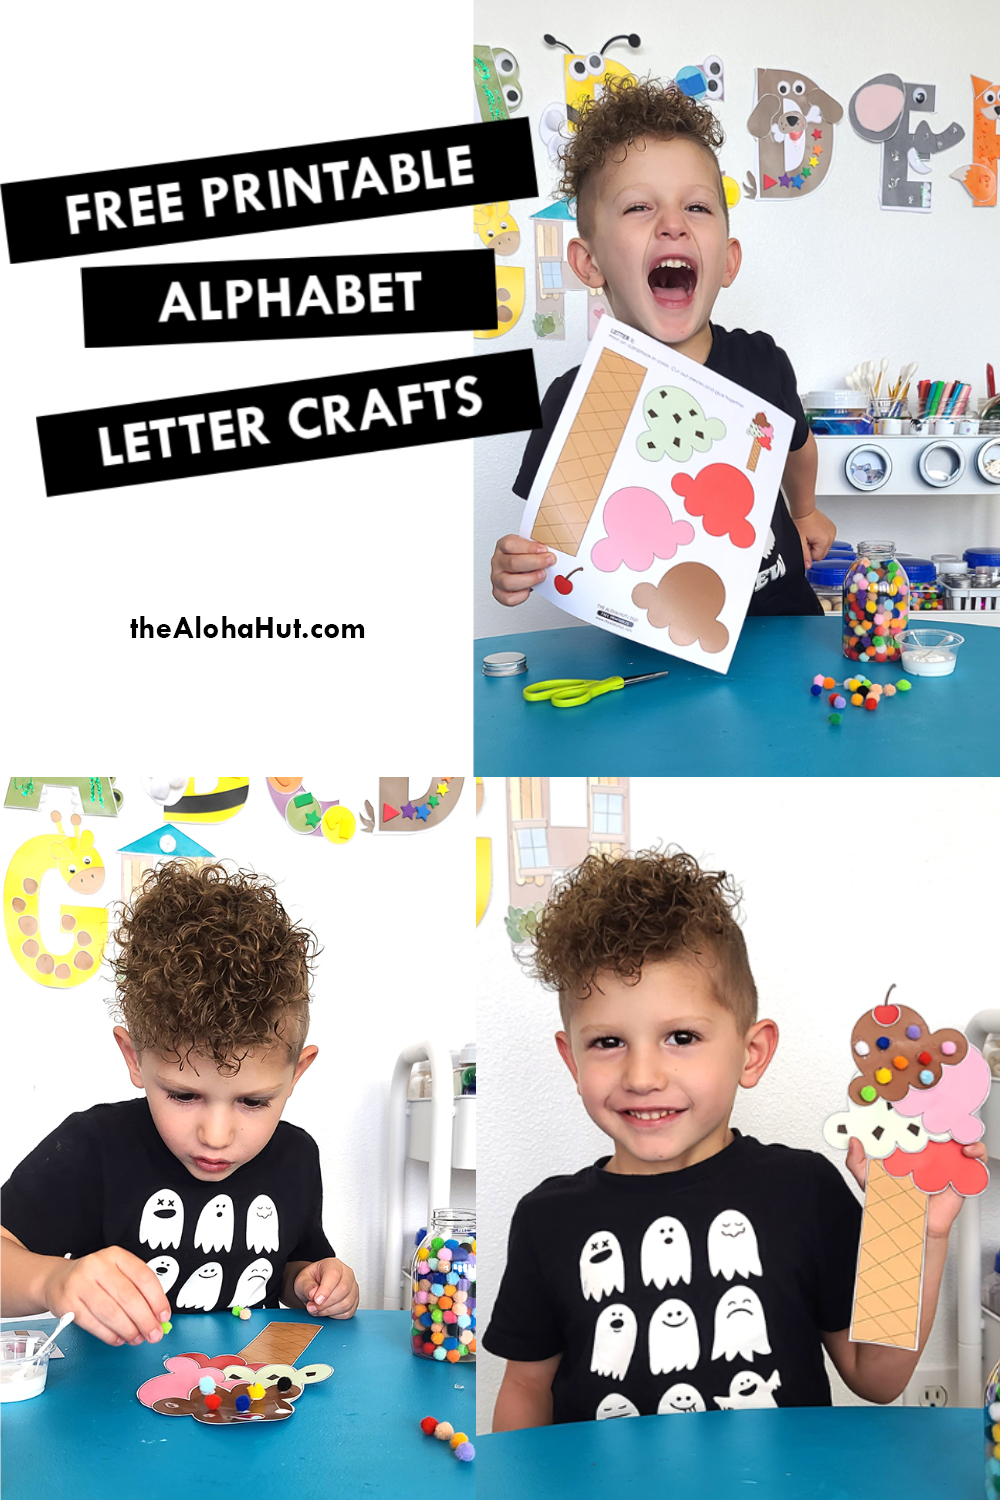 Alphabet Letter Craft - Letter I - free printable 4 by the Aloha Hut